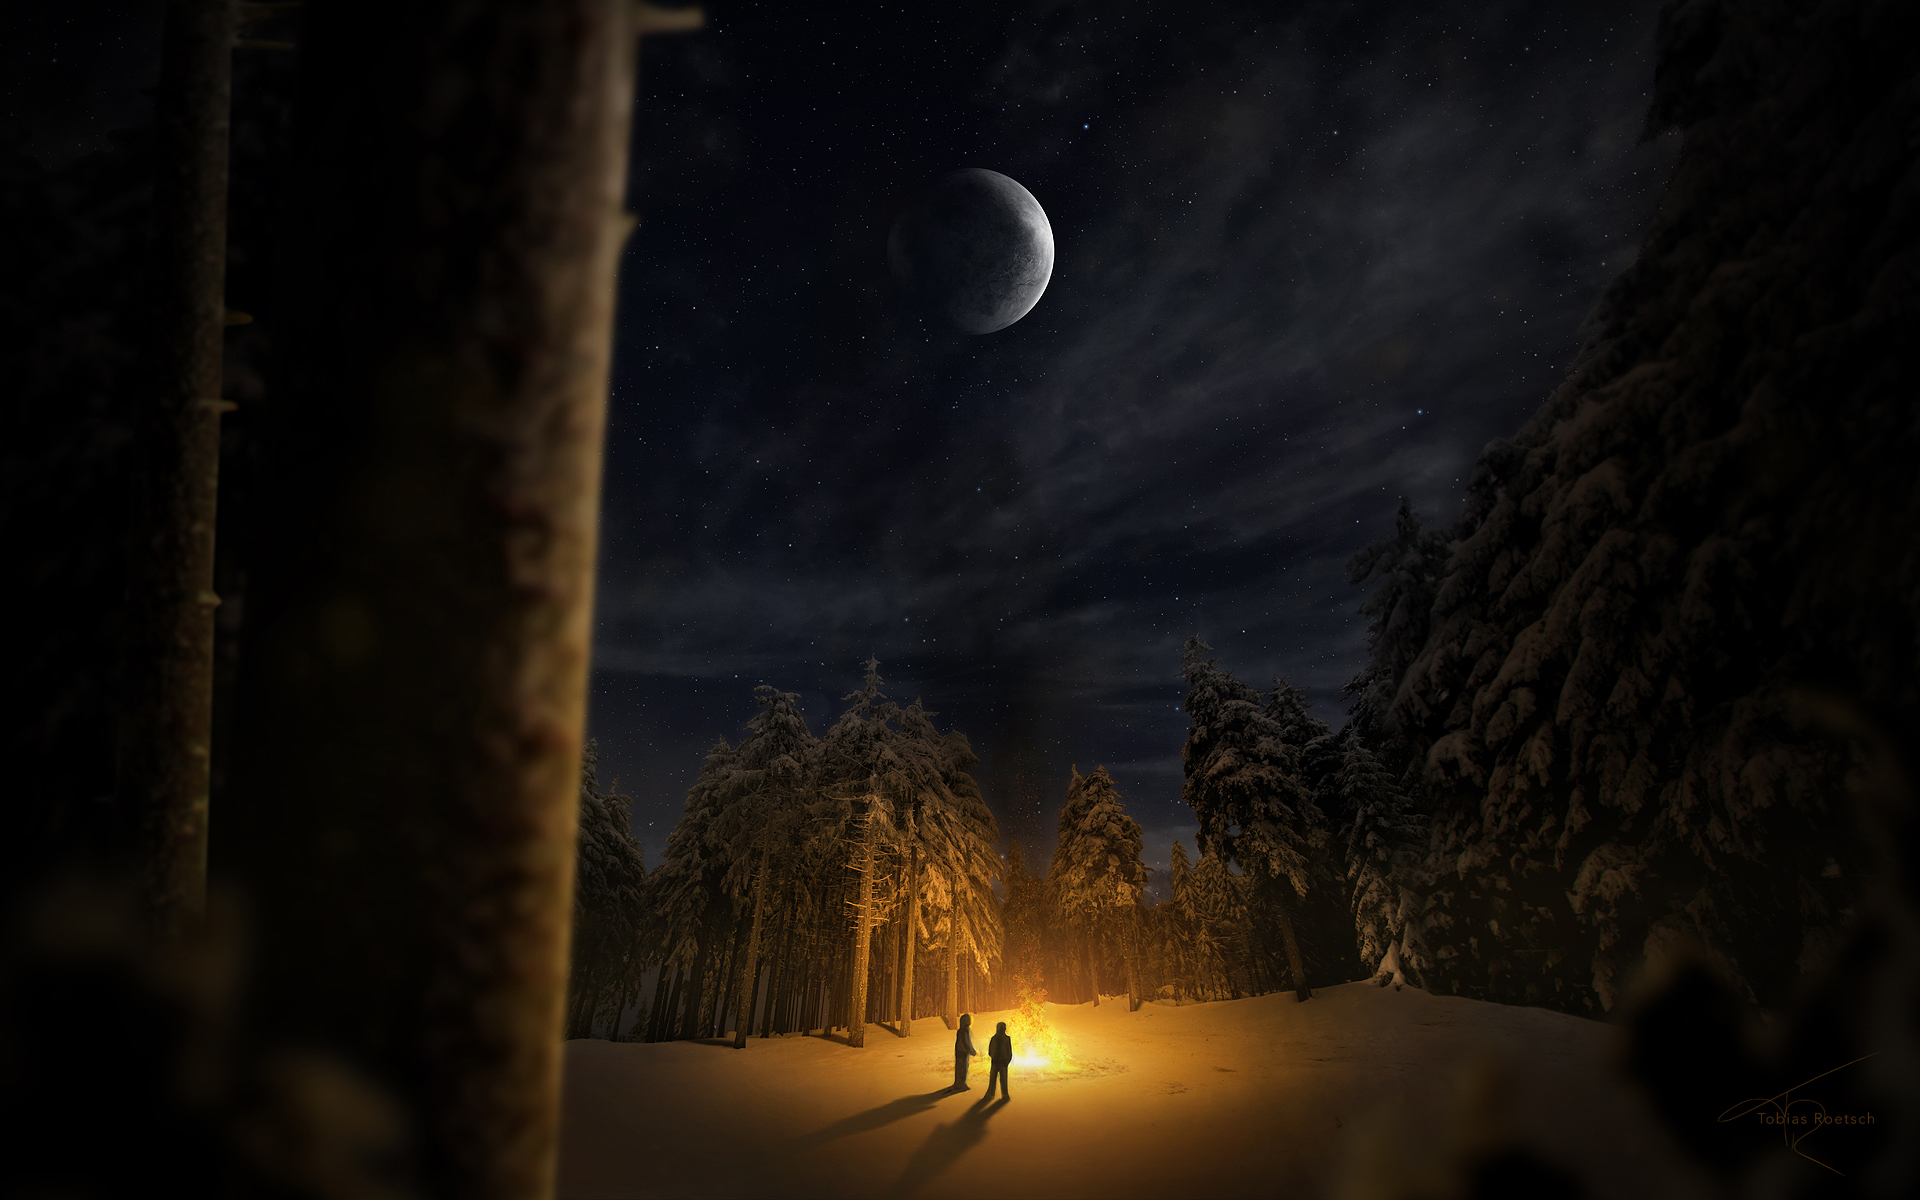 Snow Falling Wallpaper For Ipad Free Download Natural Scenery Wallpaper Of Campfire A